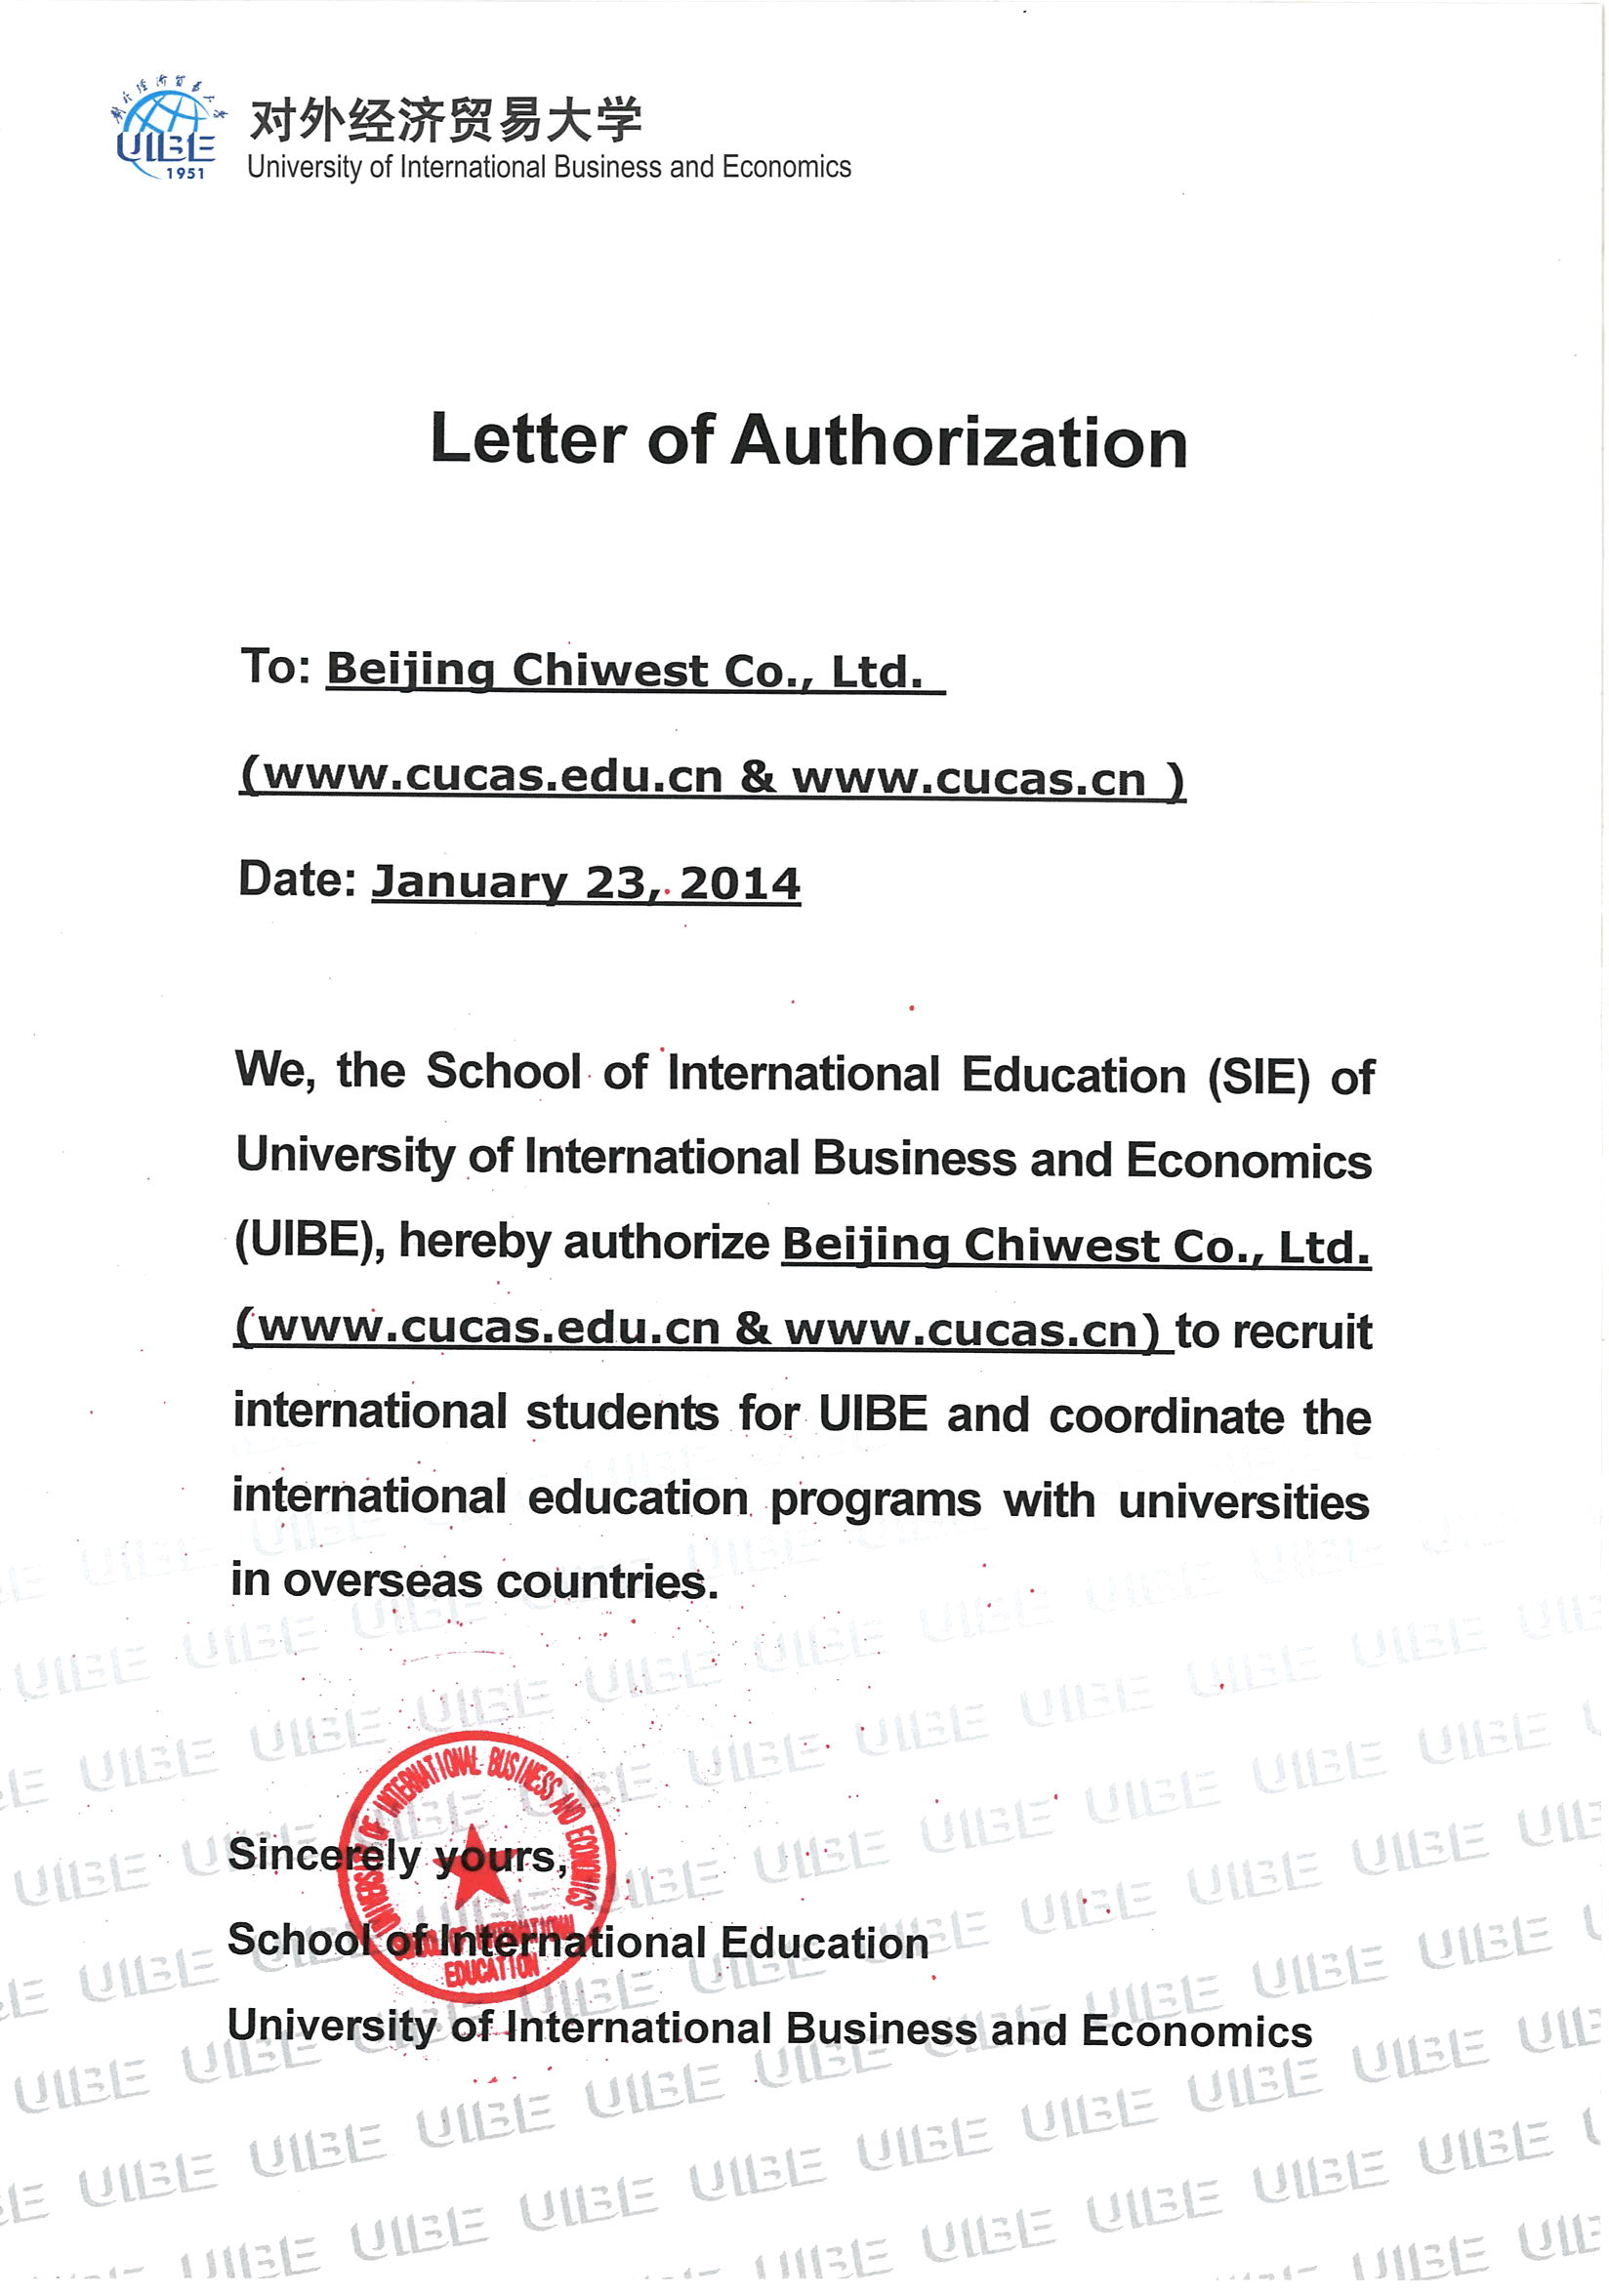 University Of International Business And Economics Authorization Letter |  Study In China | CUCAS